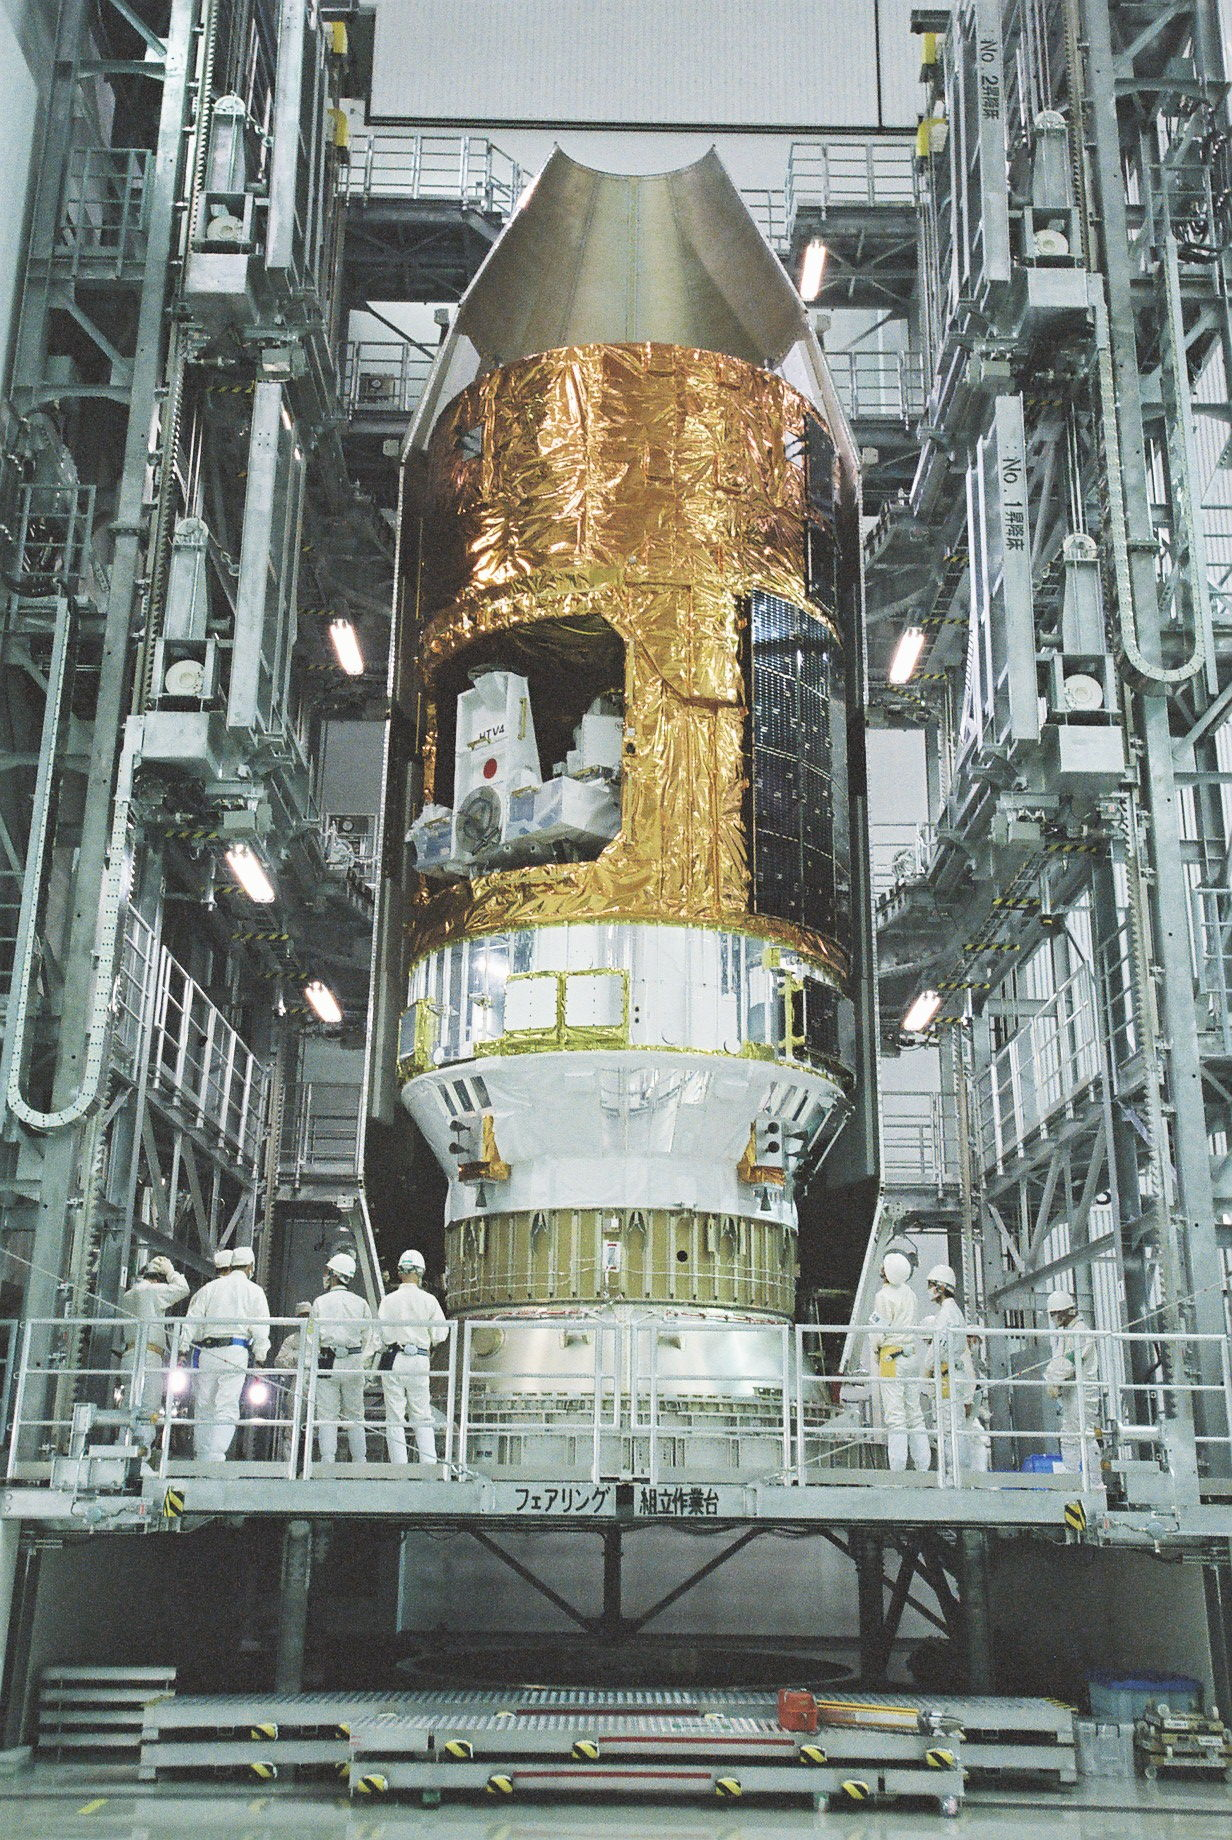 Workers on Ramp by HTV No4 Payload Fairing Encapsulation